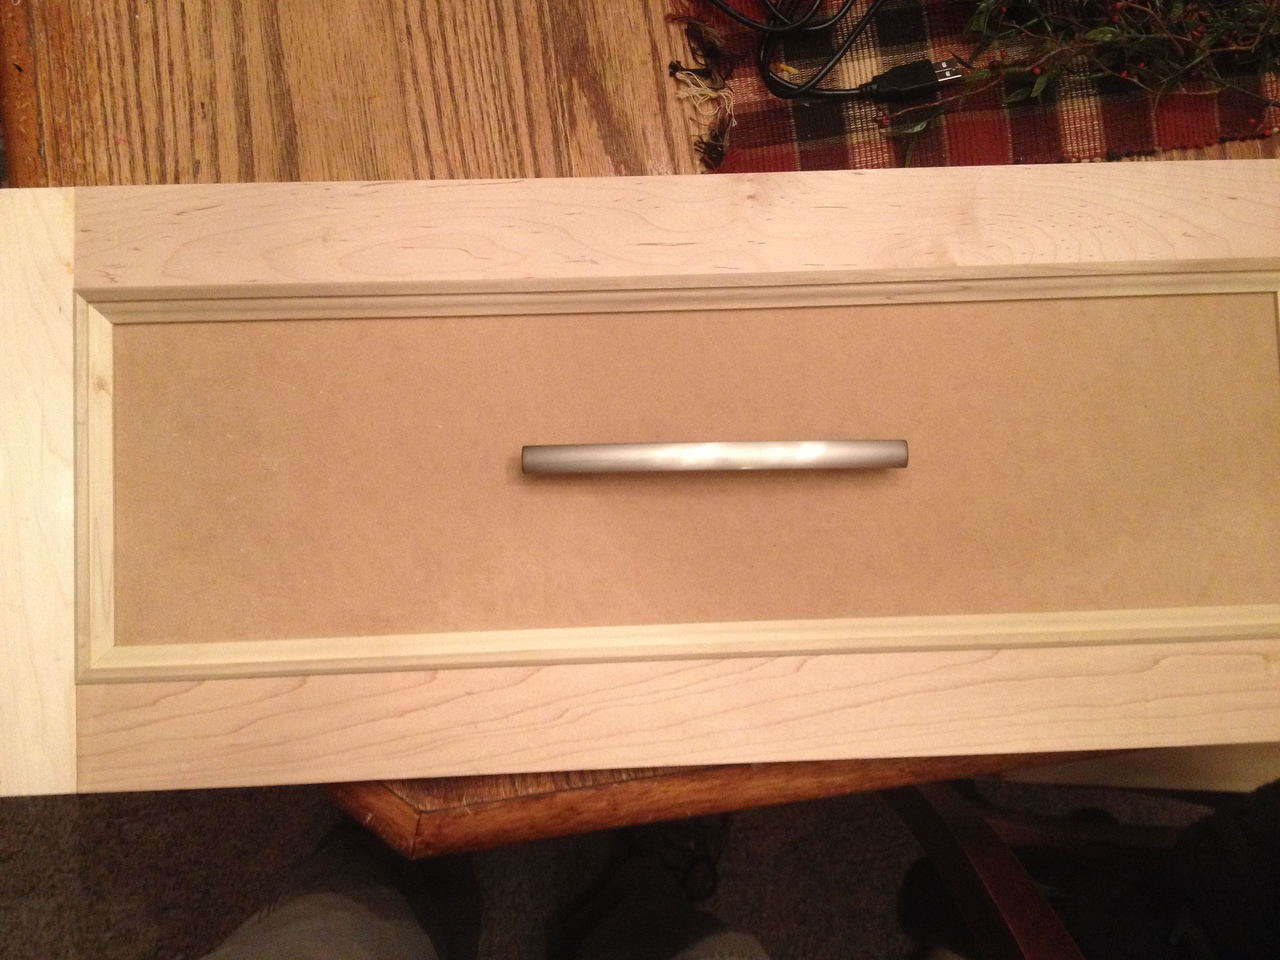 Drawer front with the trim pieces dry-fitted & test look of drawer pull.